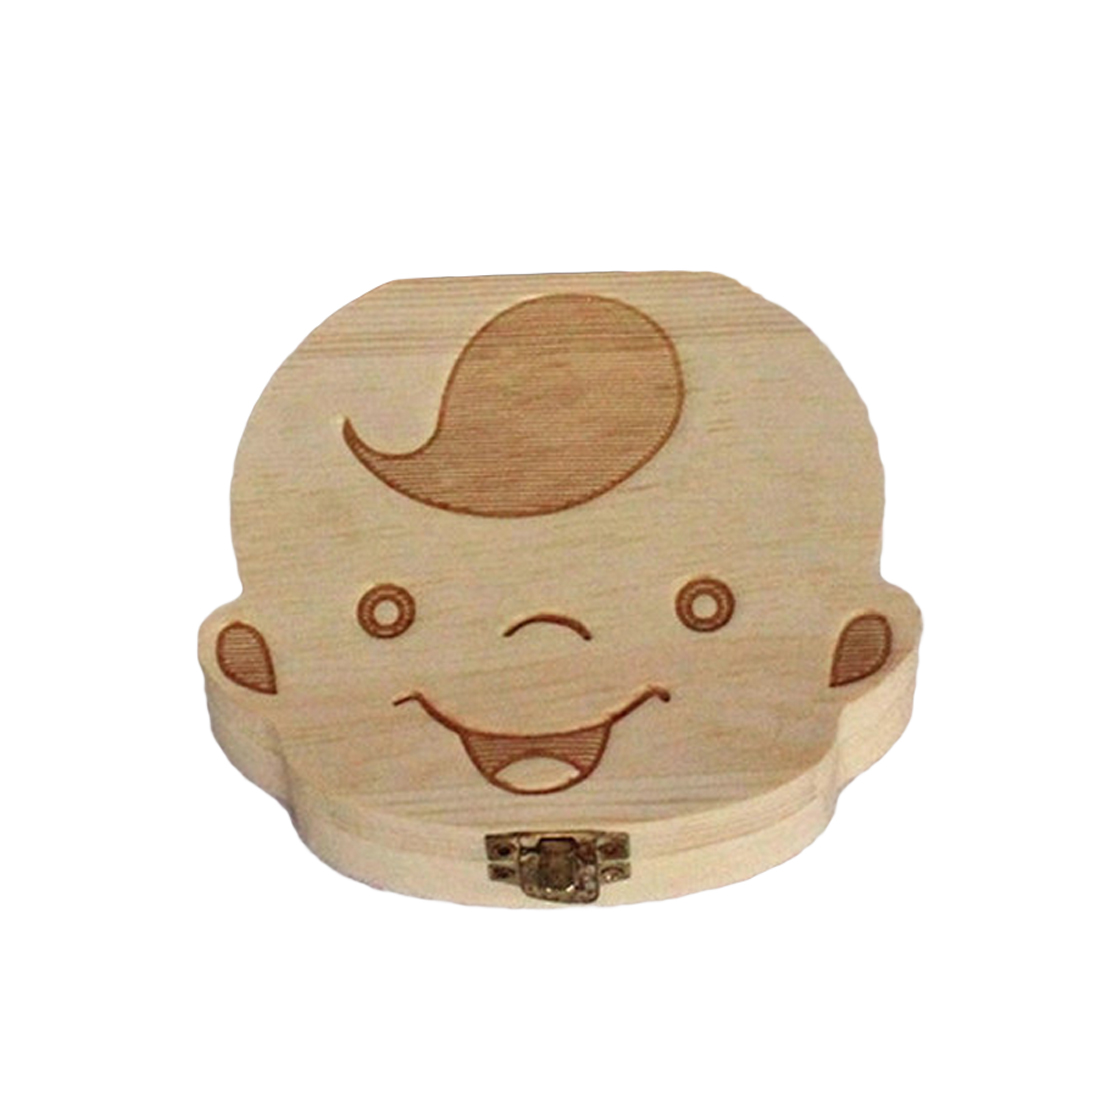 Wooden Kids Baby Tooth Box storage box Organizer Milk Teeth Wood Storage Baby Teeth Box for Boy Girl Save Teeth Umbilical Cord